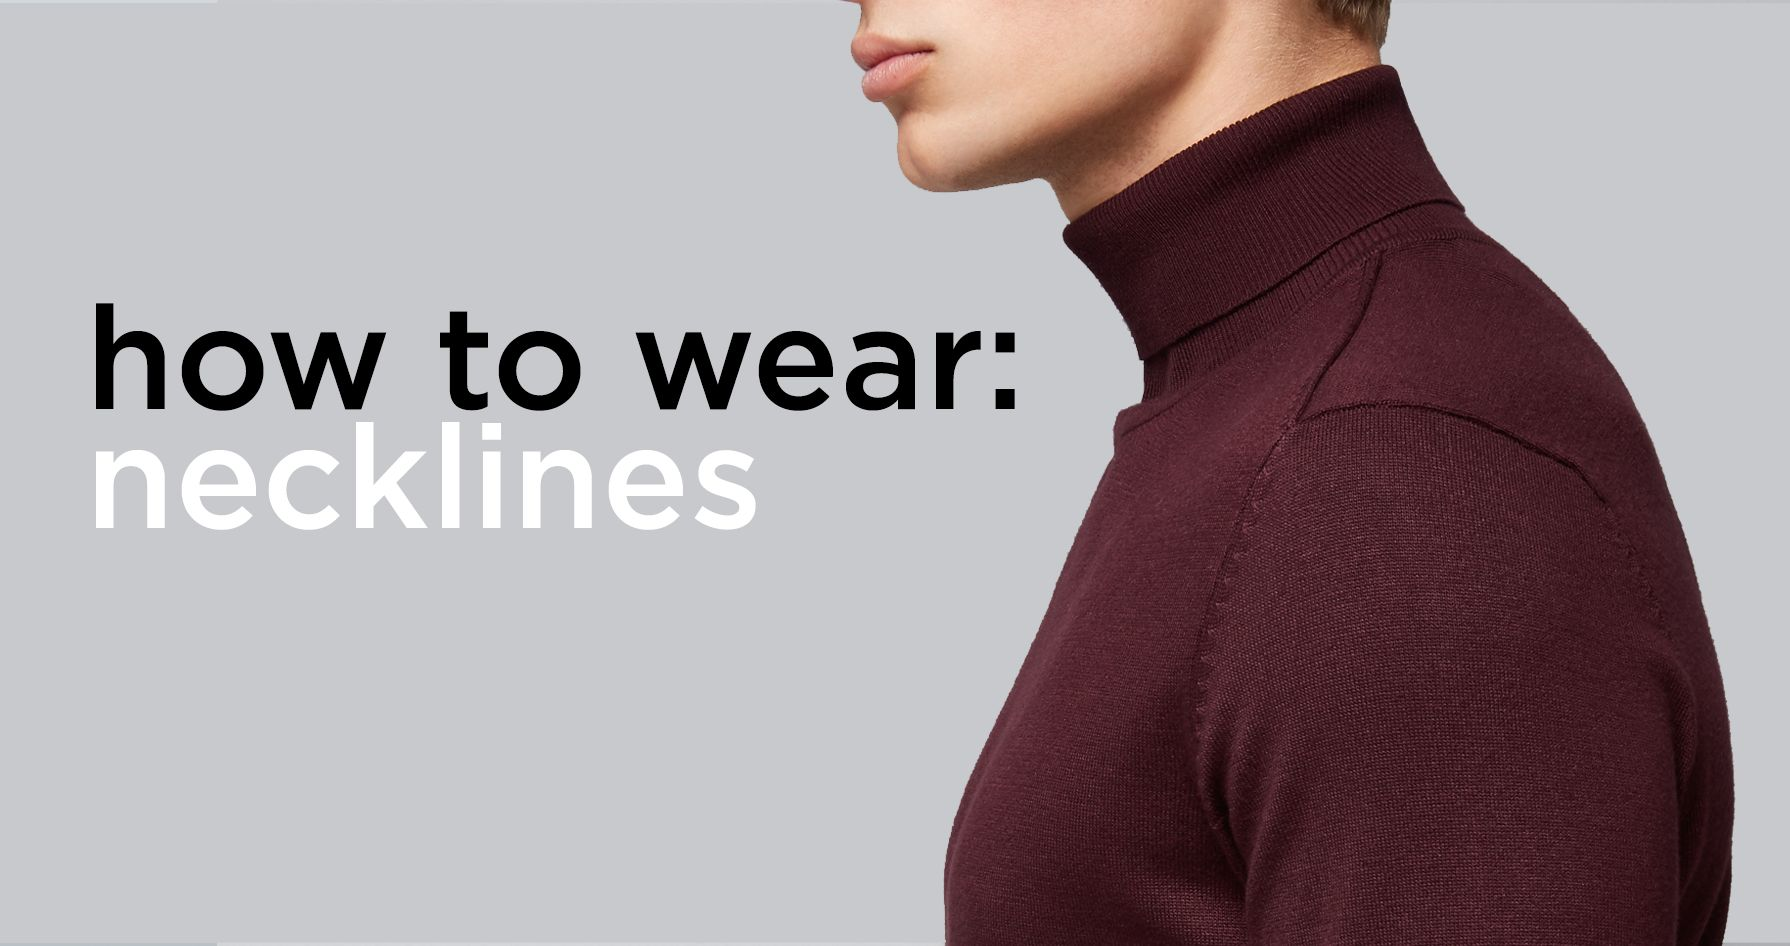 HOW TO WEAR NECKLINES